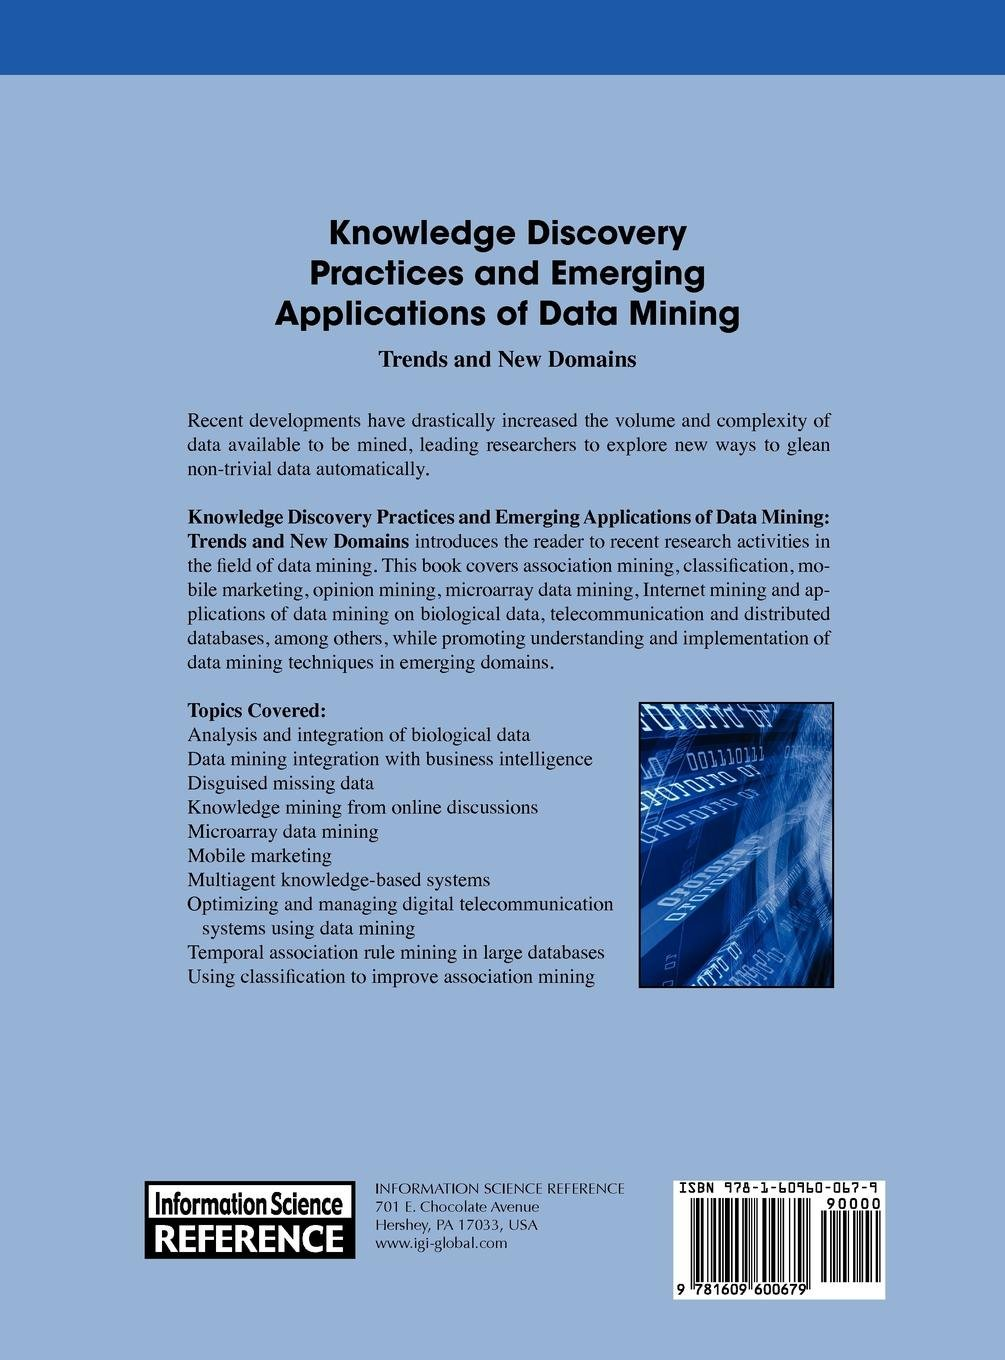 Buy Knowledge Discovery Practices and Emerging Applications